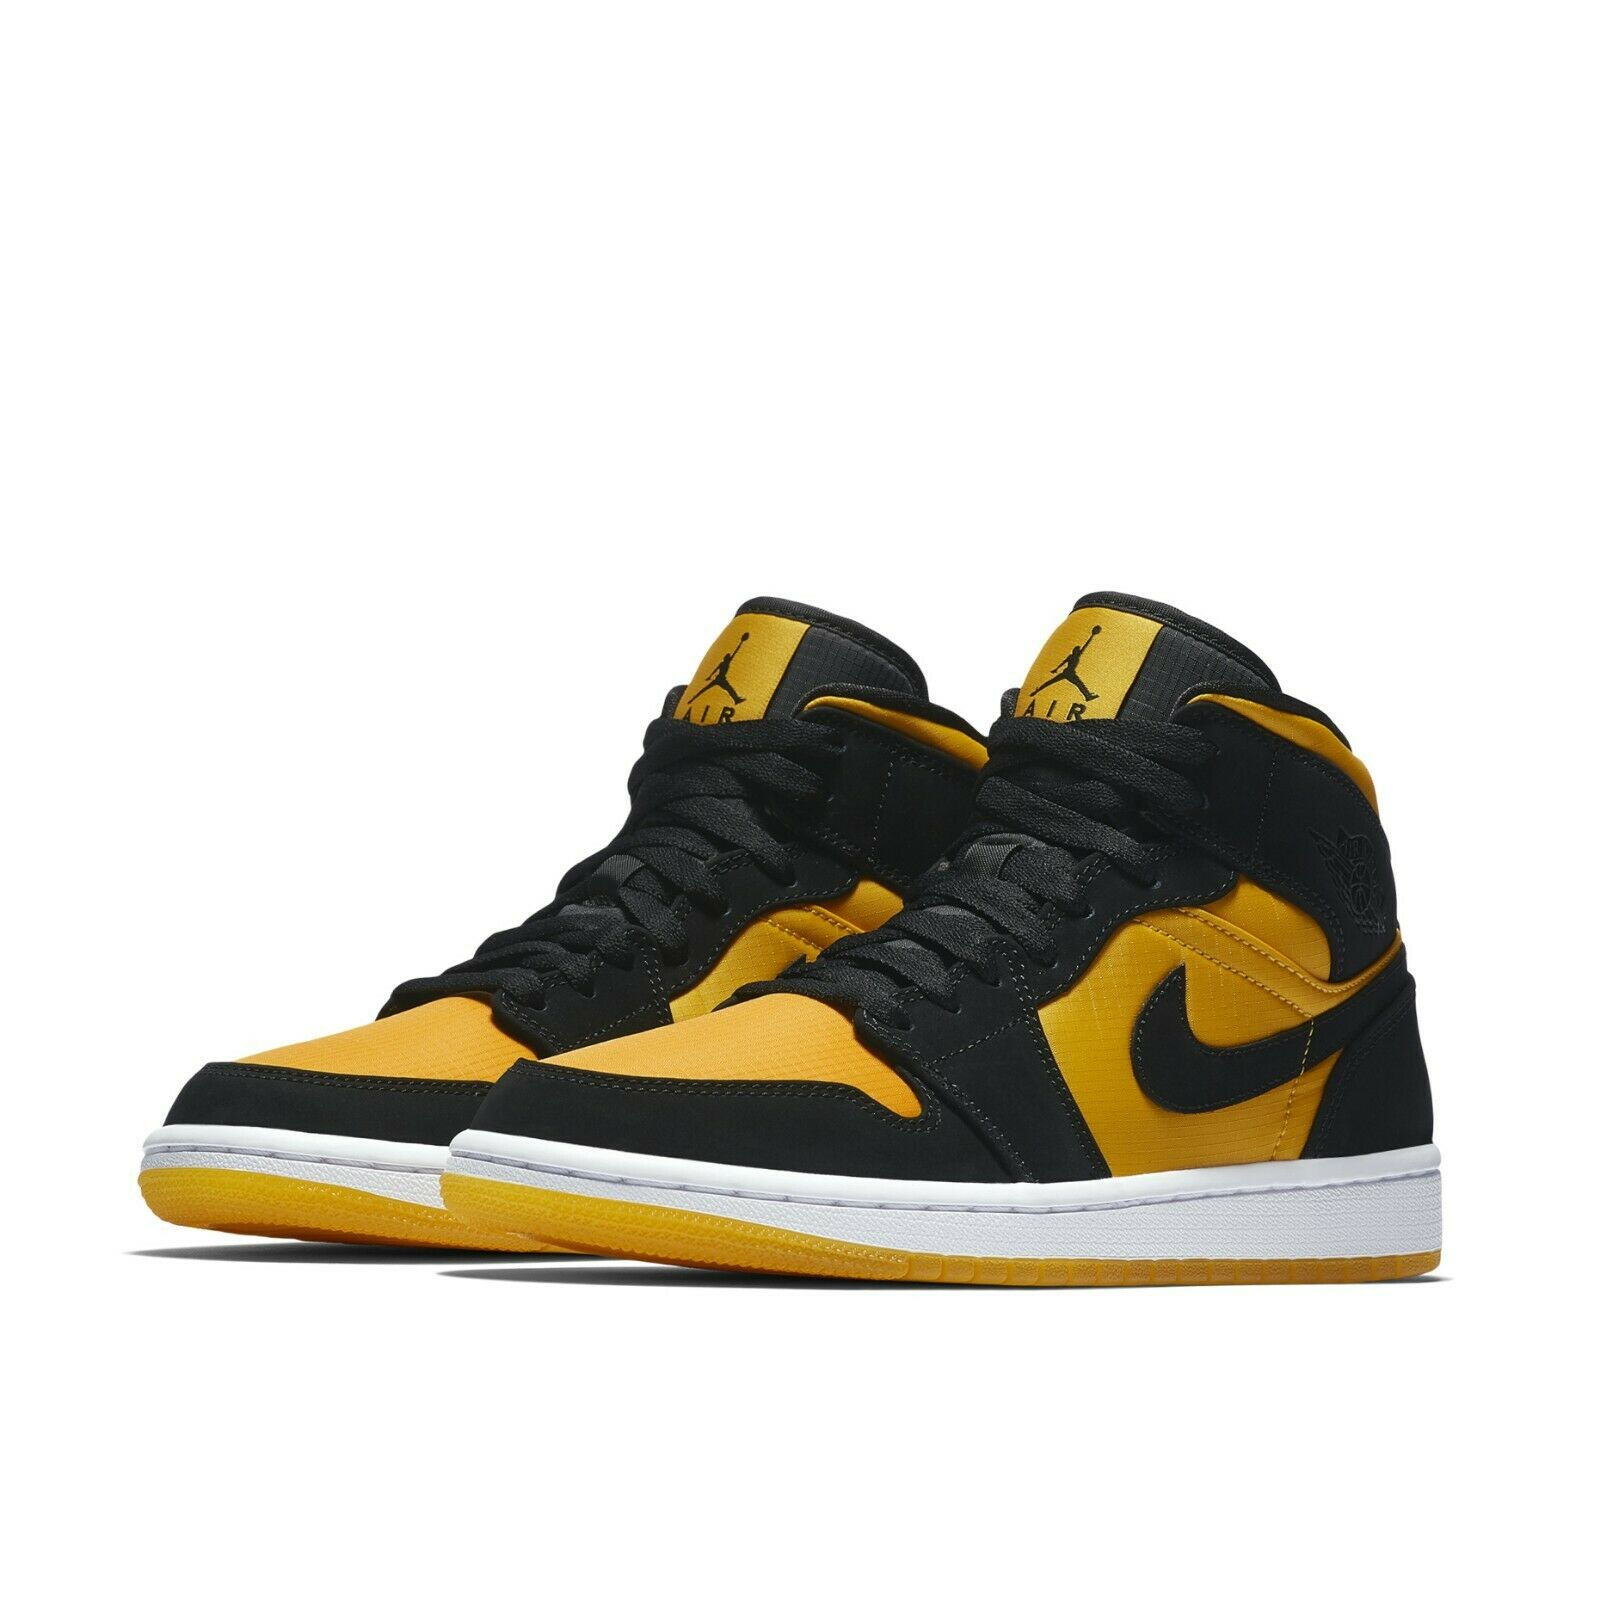 Yellow SE AJ1 Black 007 about Air GC Details Nike 1 University Taxi Mid CD6759 Jordan Gold QdrBexCWo